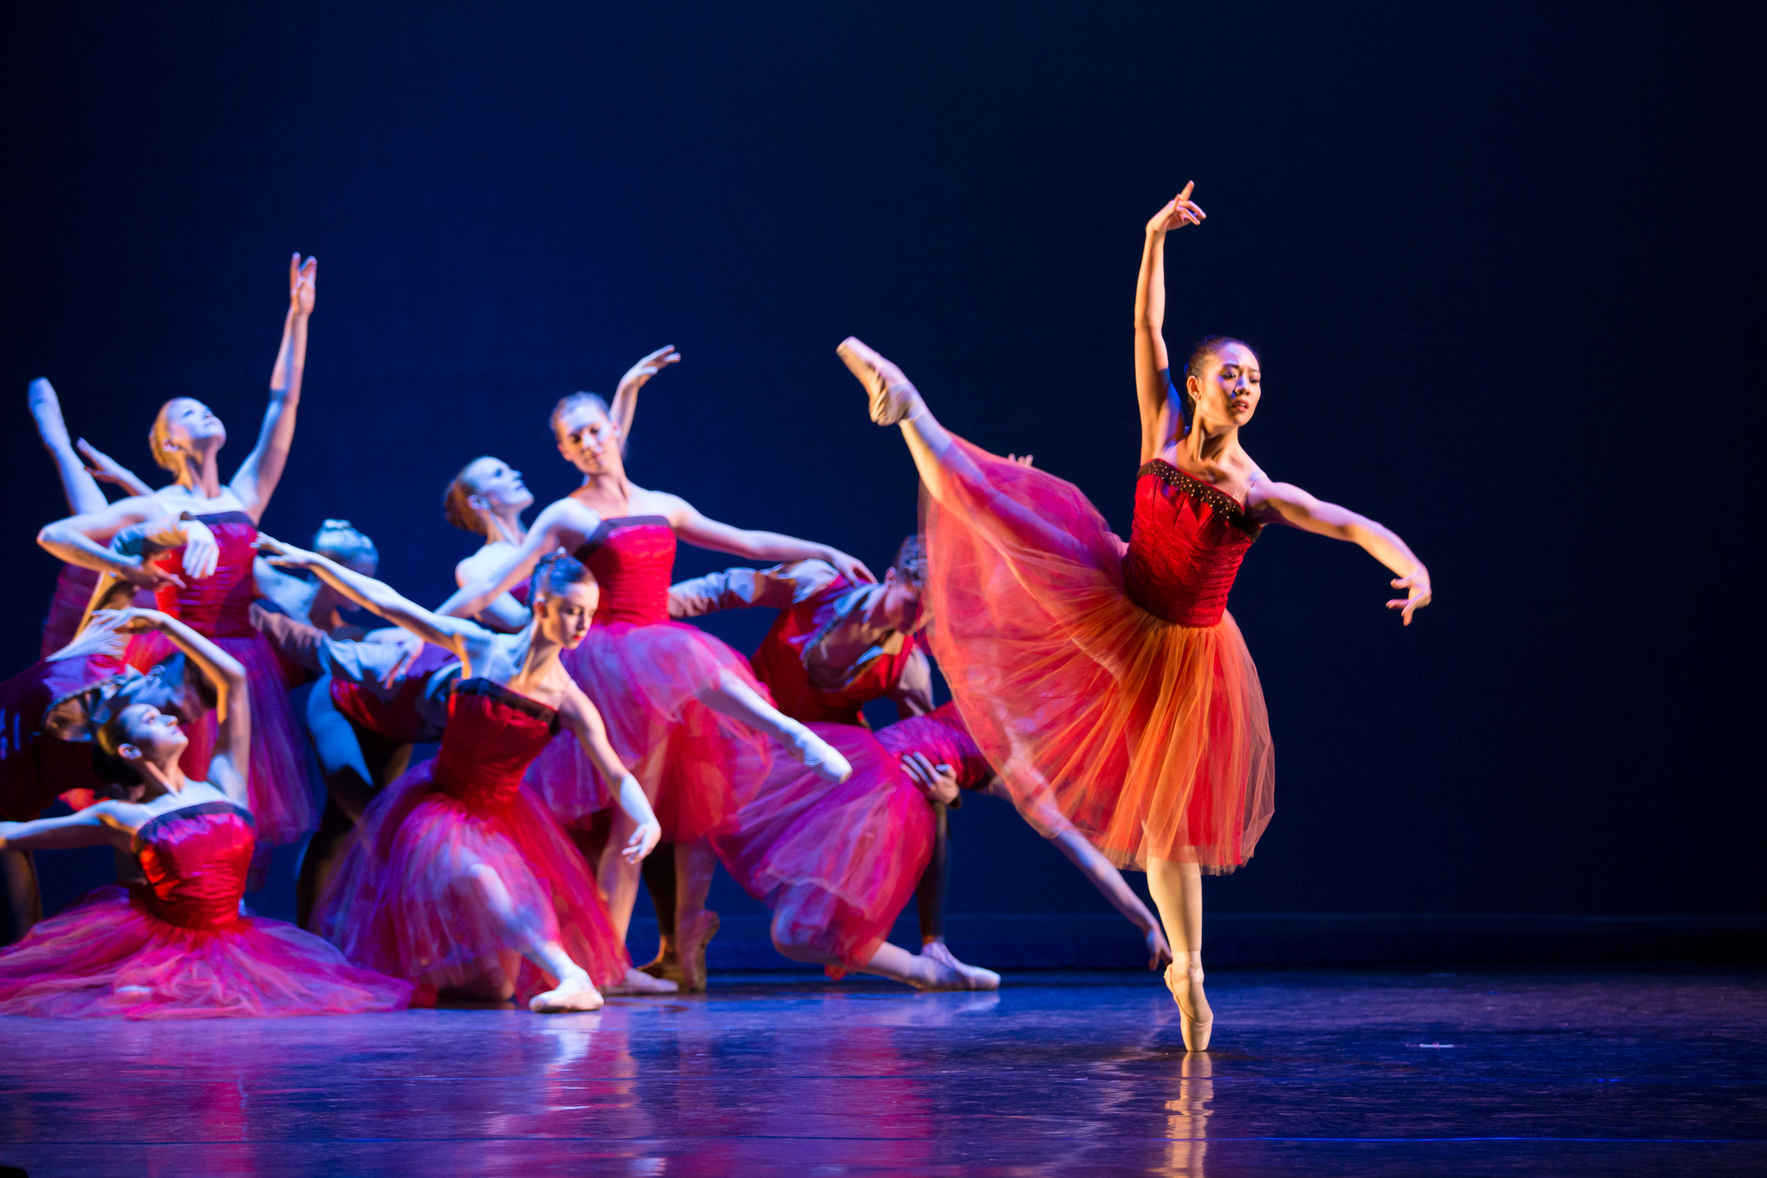 Give today to support honest, relevant, and breathtaking dance! image